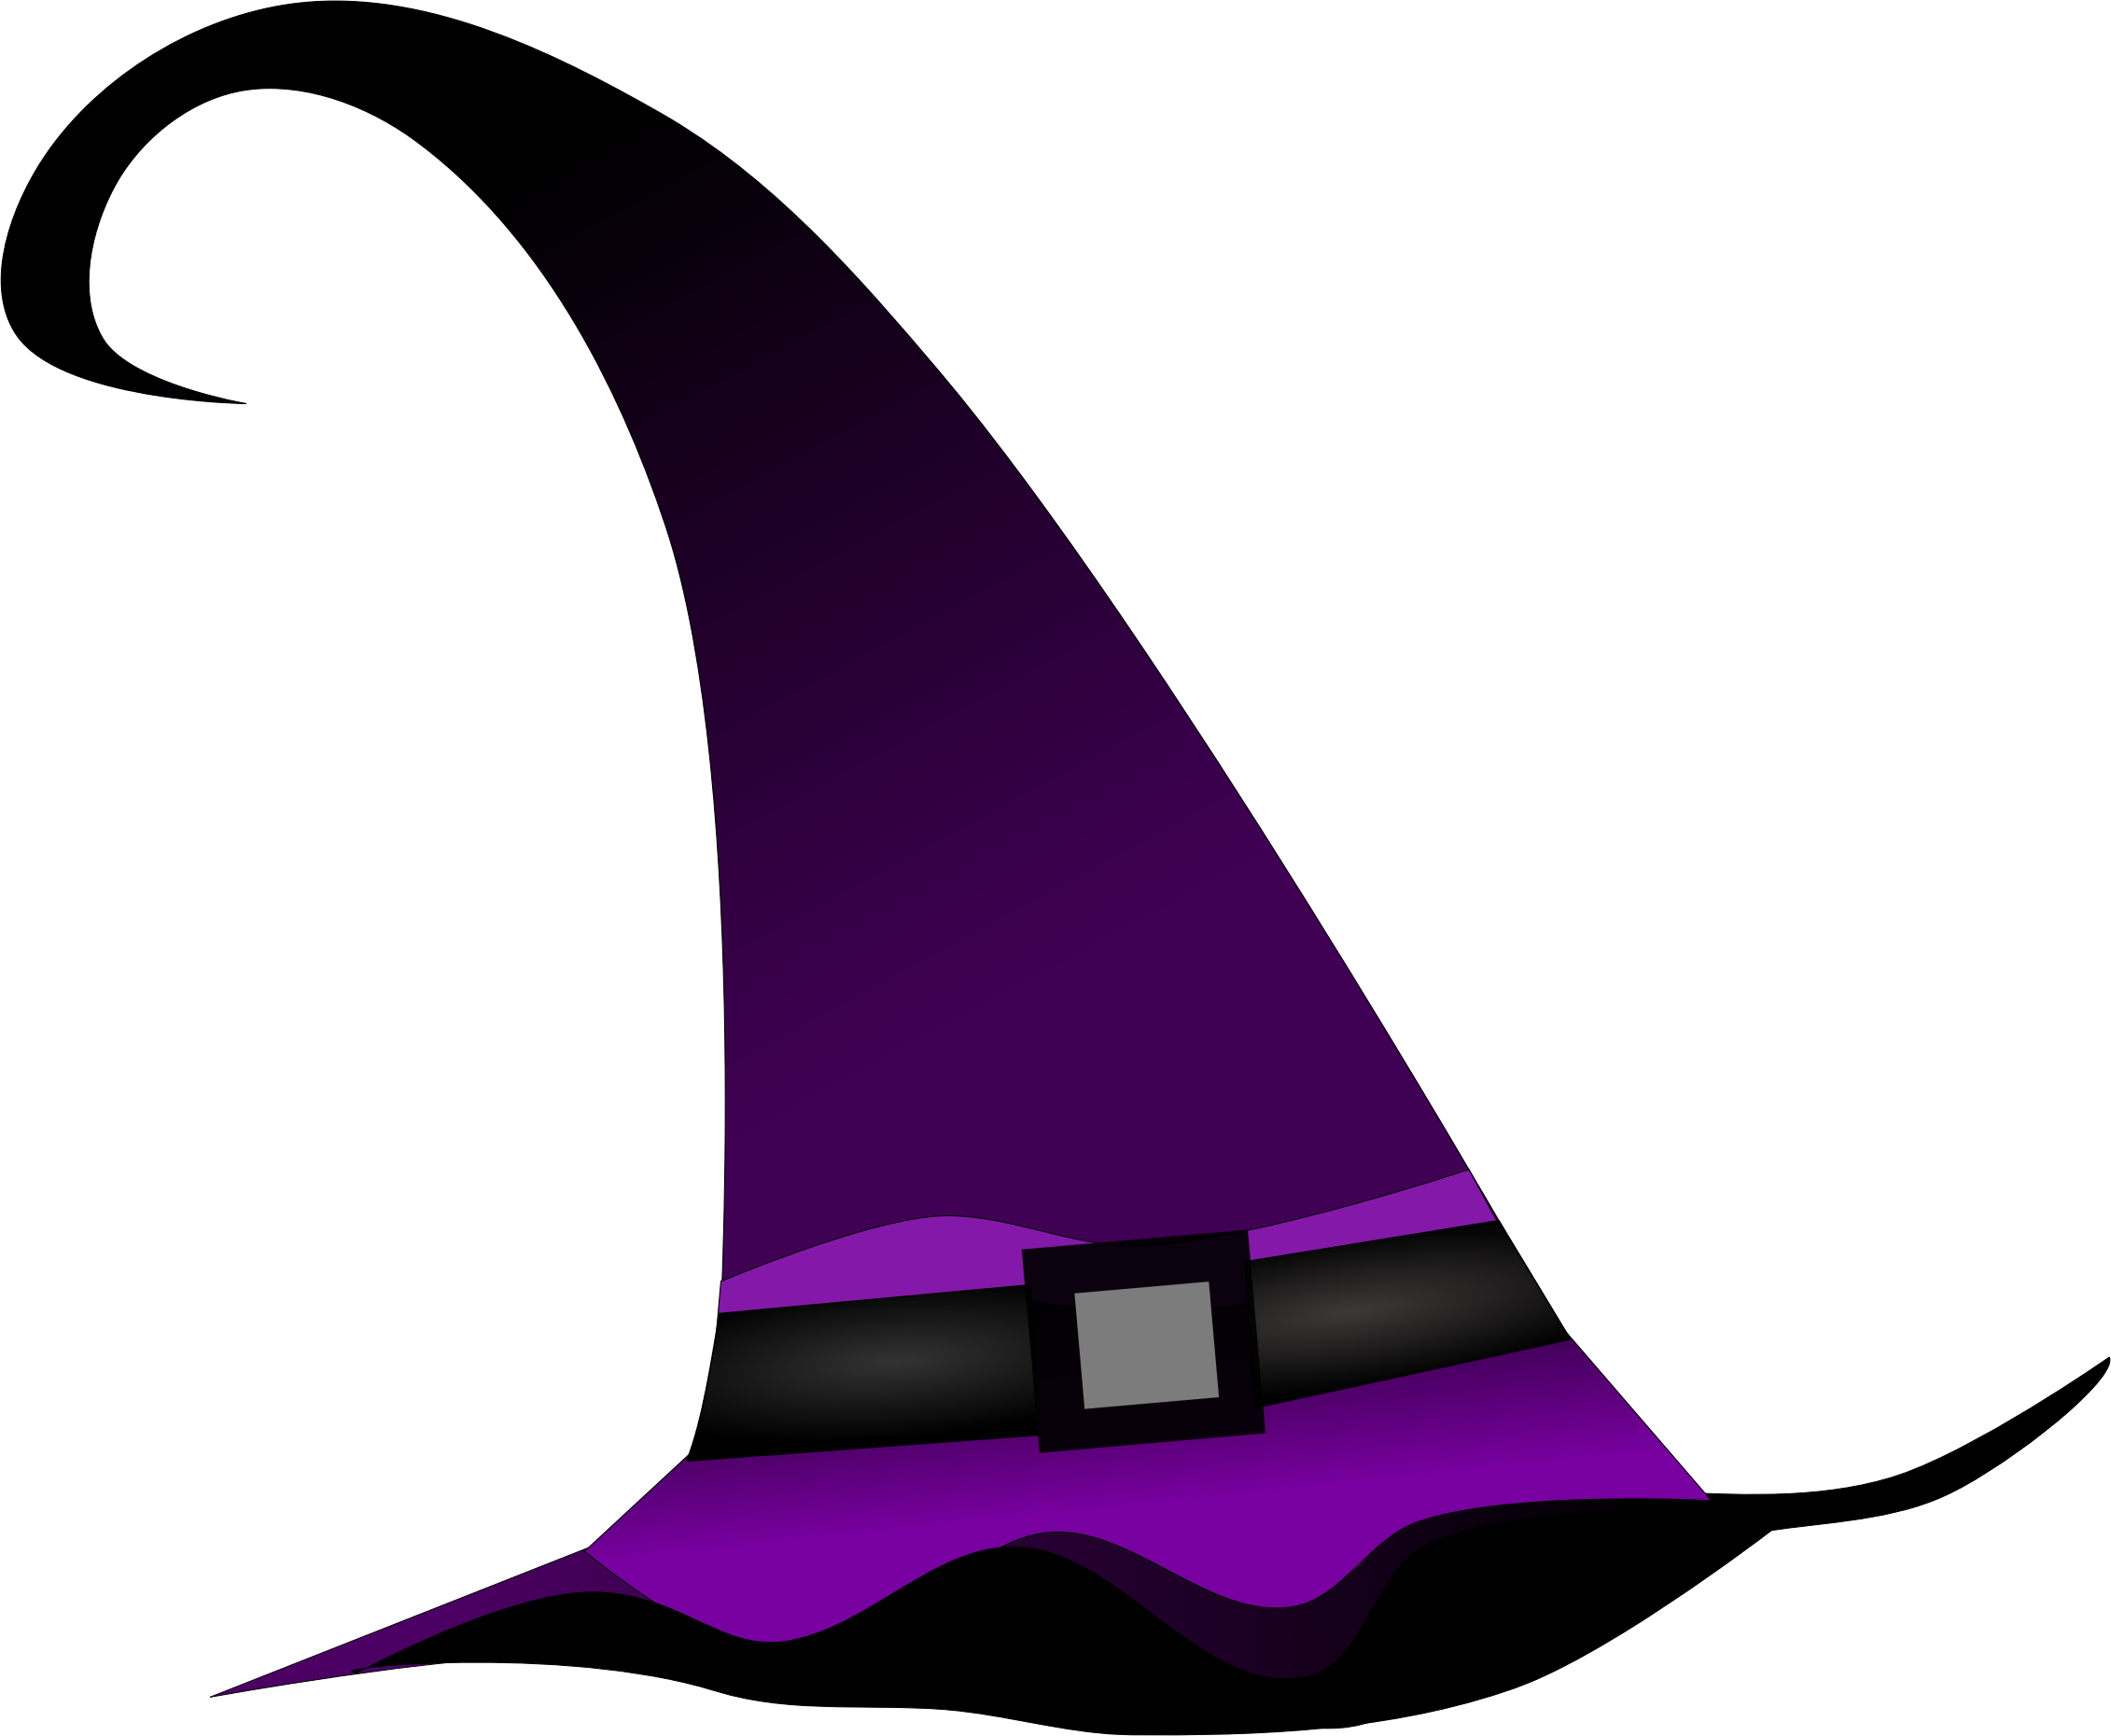 Purple witch hat by Pippi2011